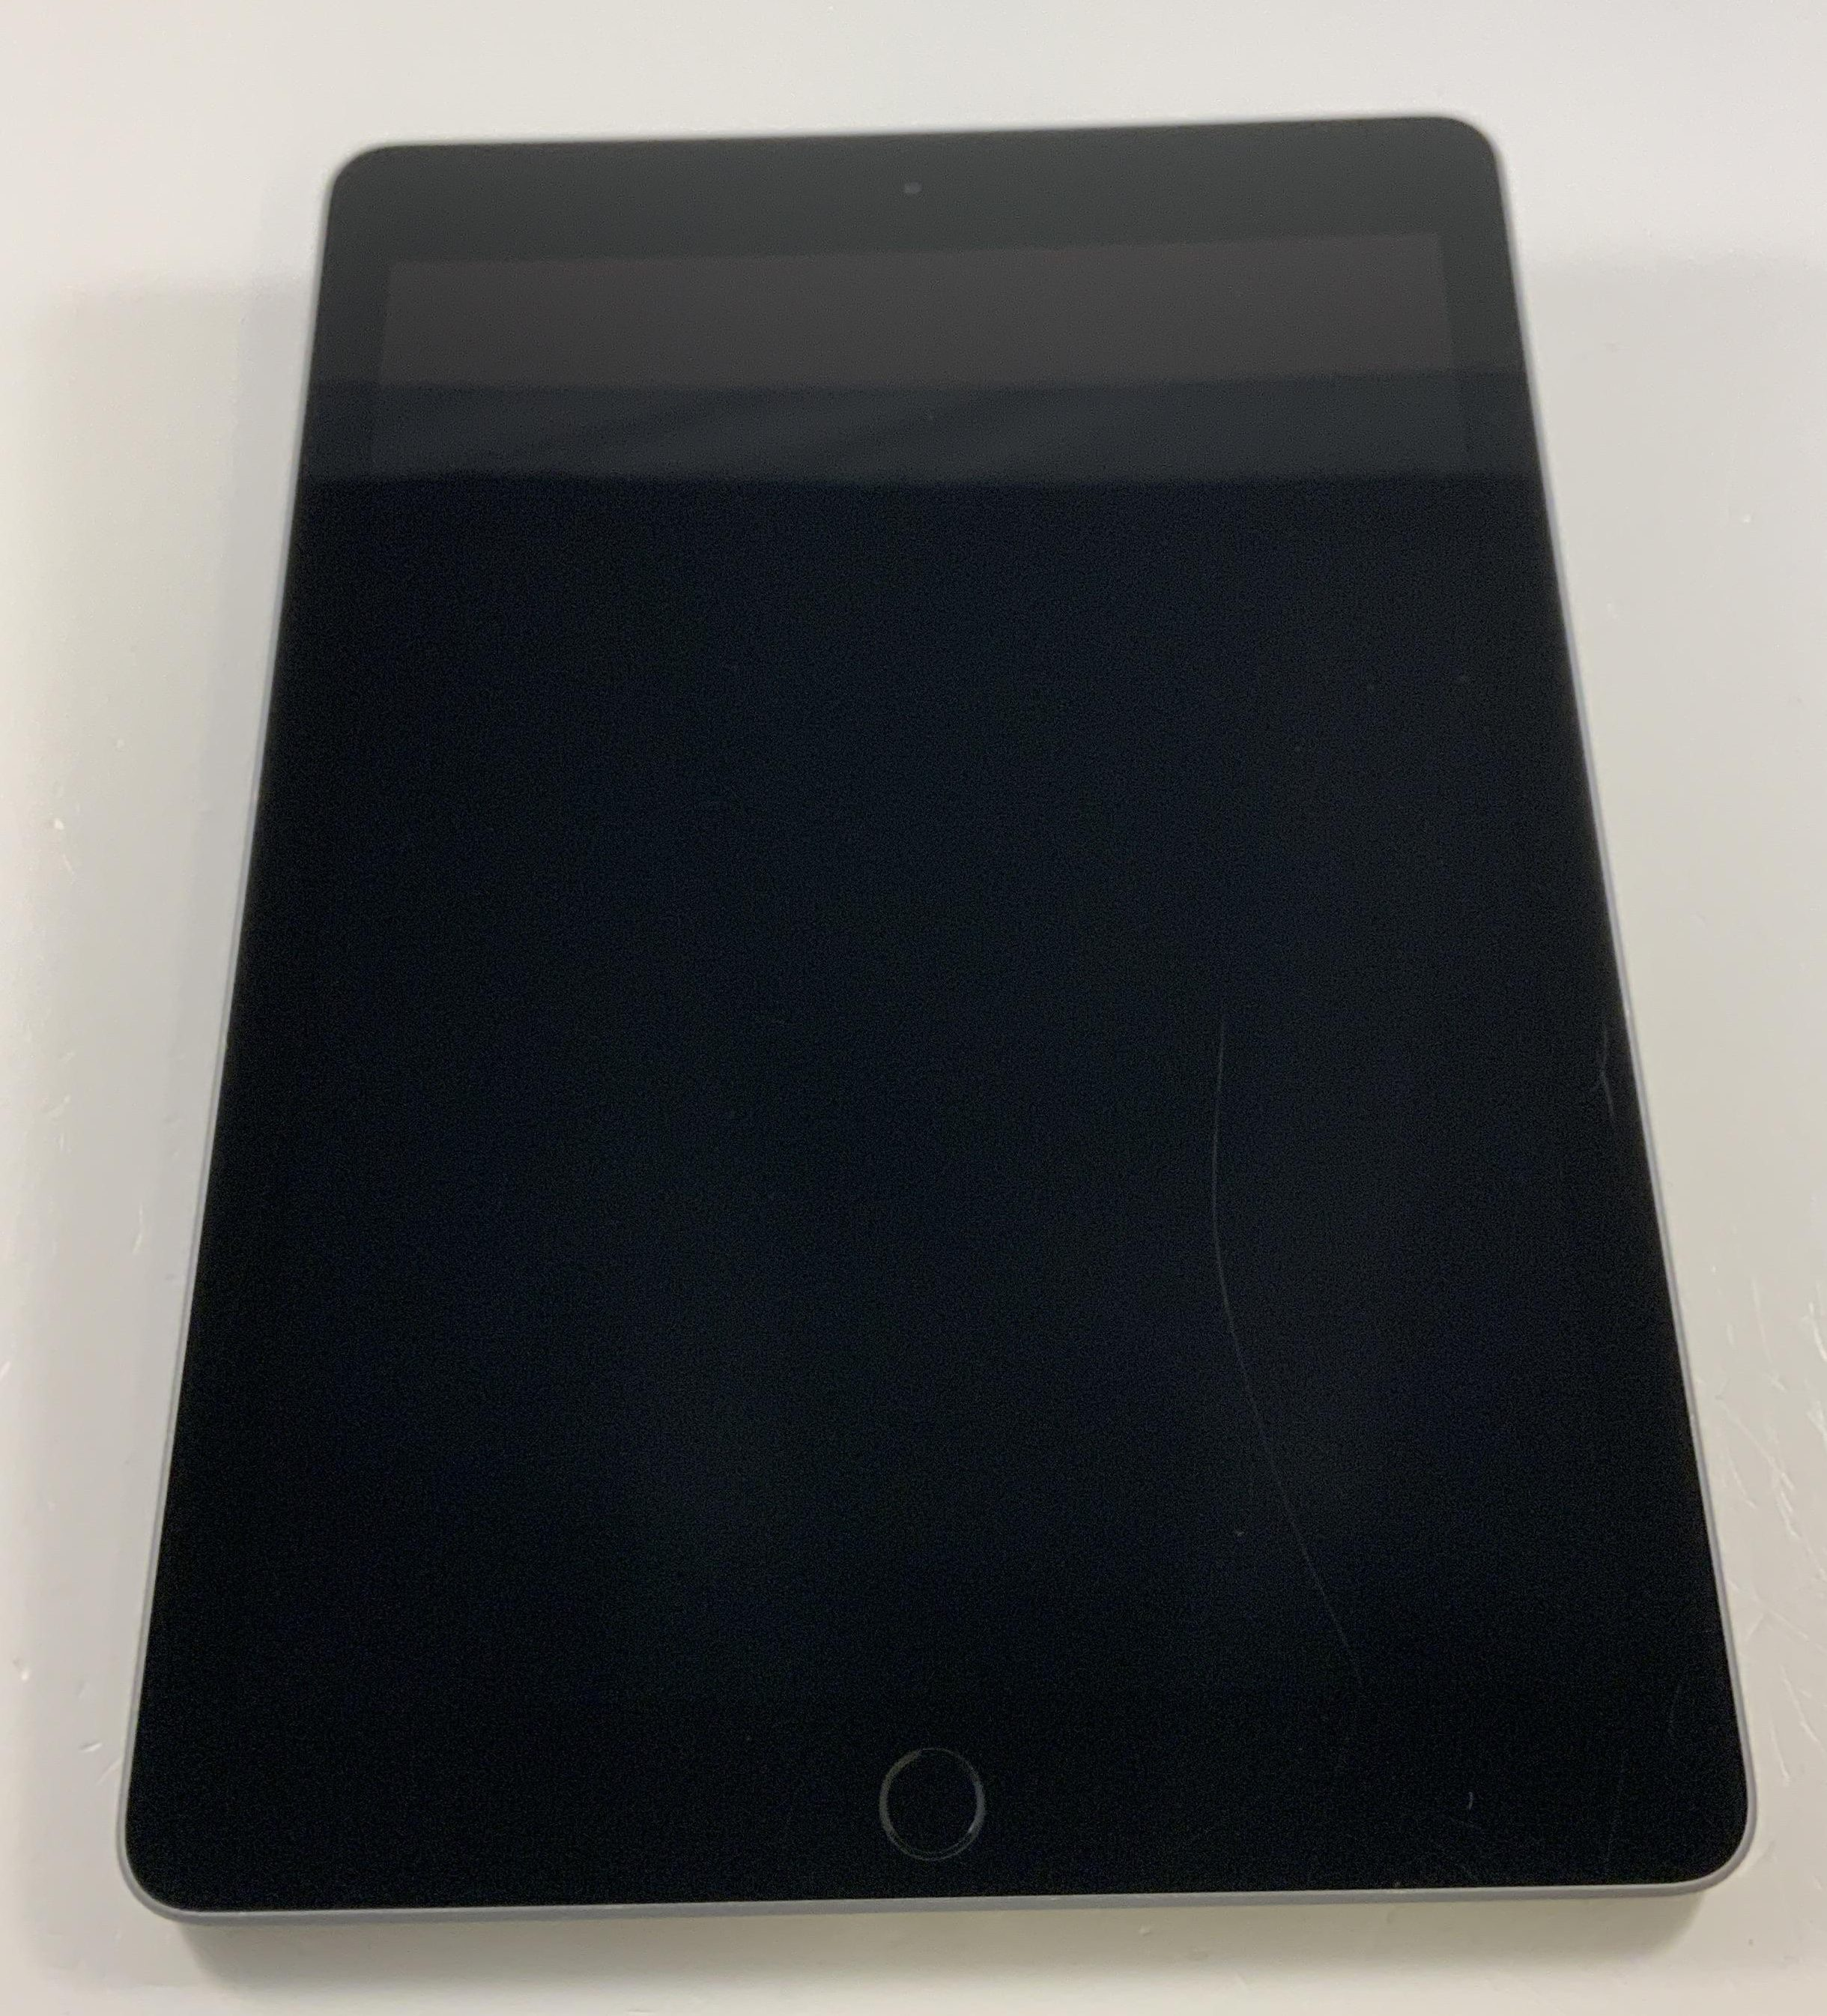 iPad 6 Wi-Fi 32GB, 32GB, Space Gray, Afbeelding 1